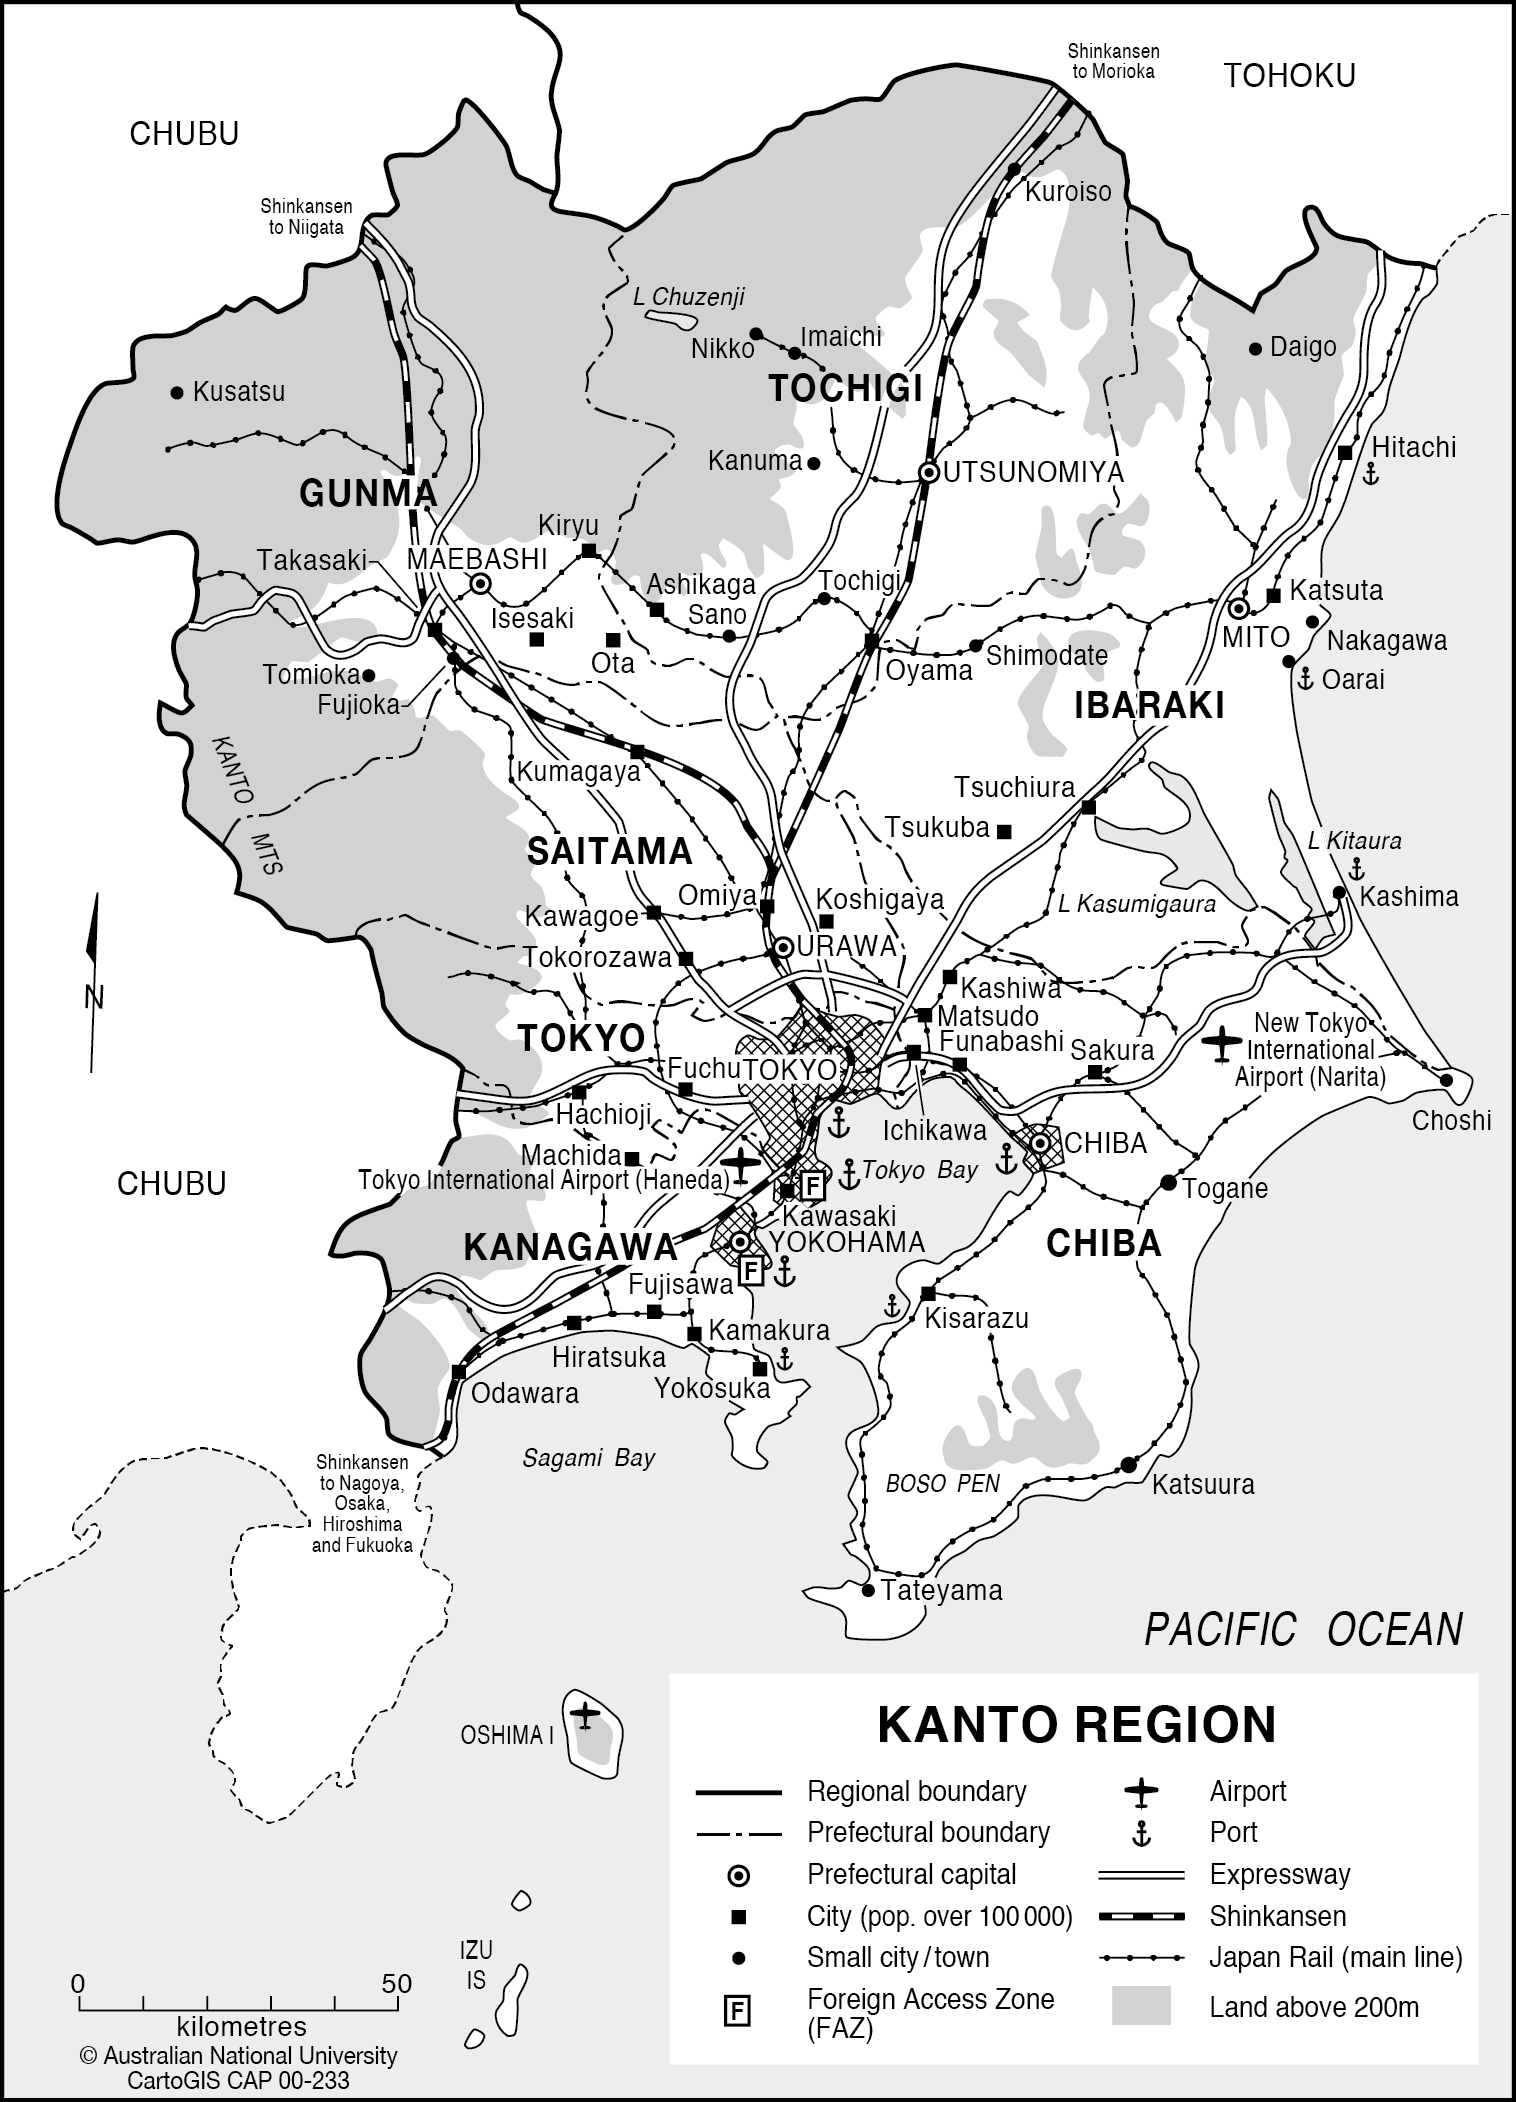 Kanto Region CartoGIS Services Maps Online ANU - Isesaki map